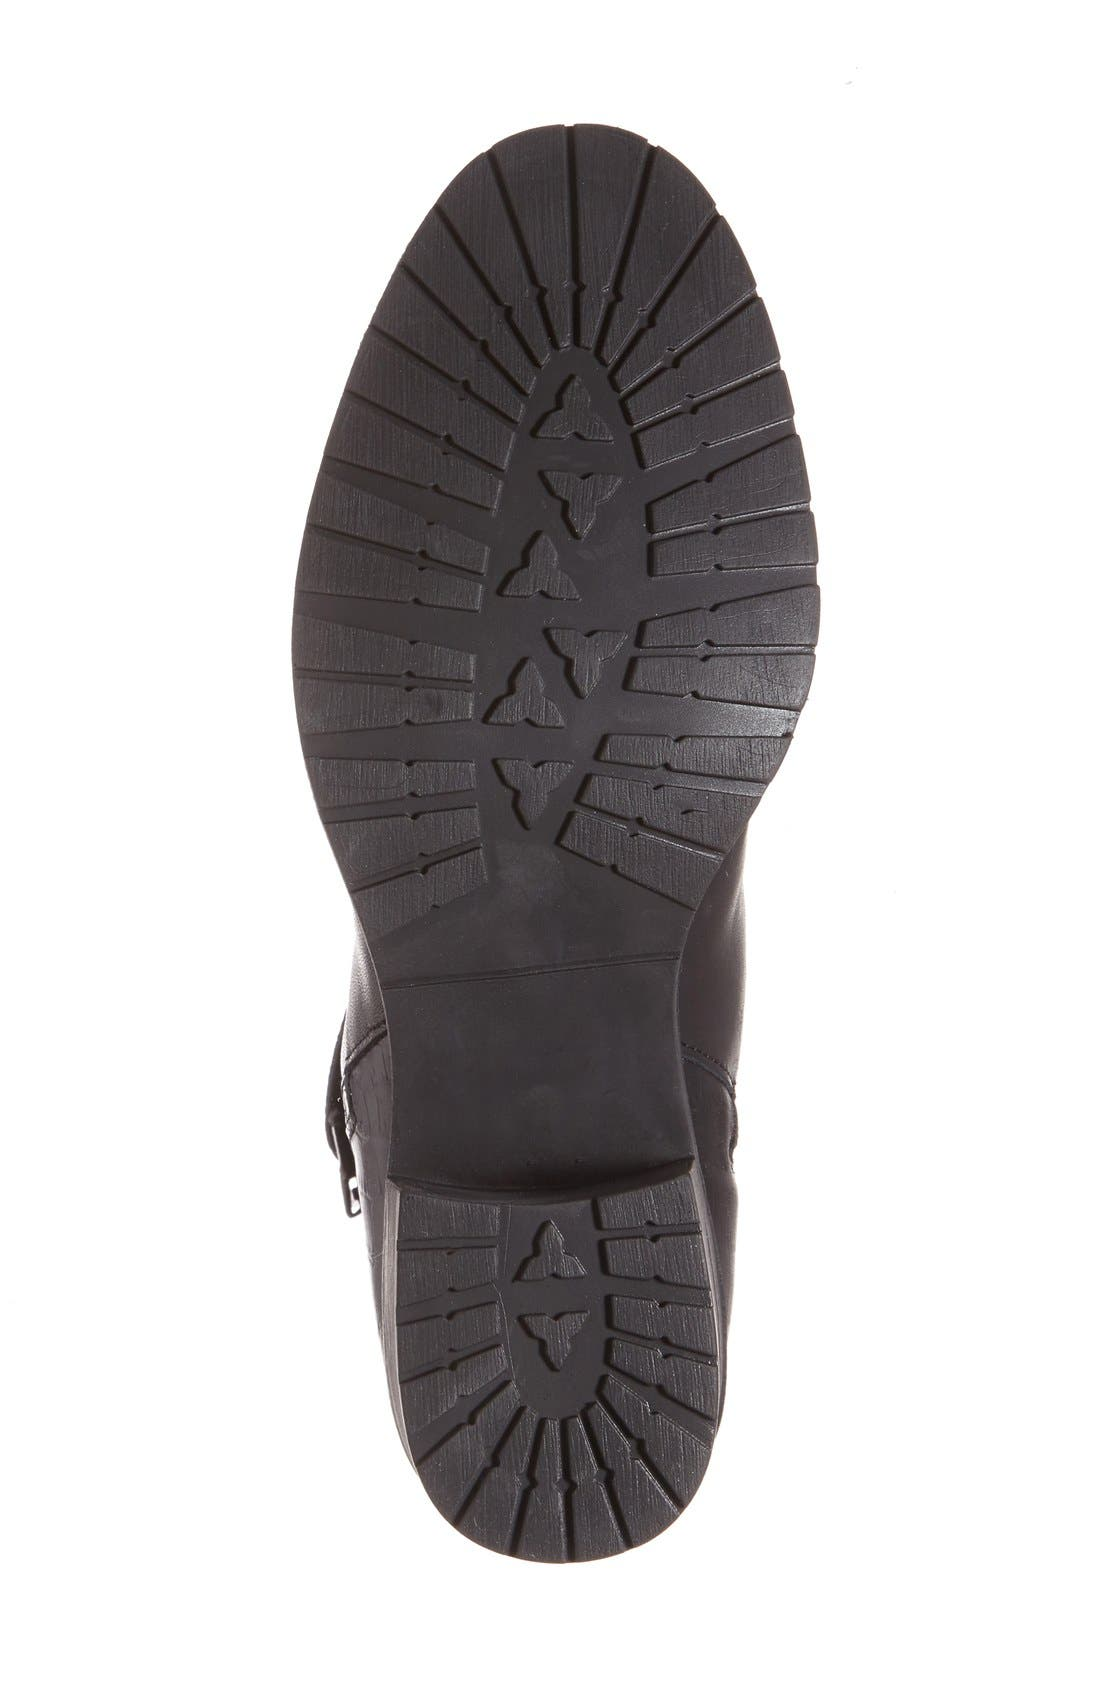 'Borano' Slouchy Waterproof Bootie,                             Alternate thumbnail 4, color,                             Black Crinkle Patent Leather